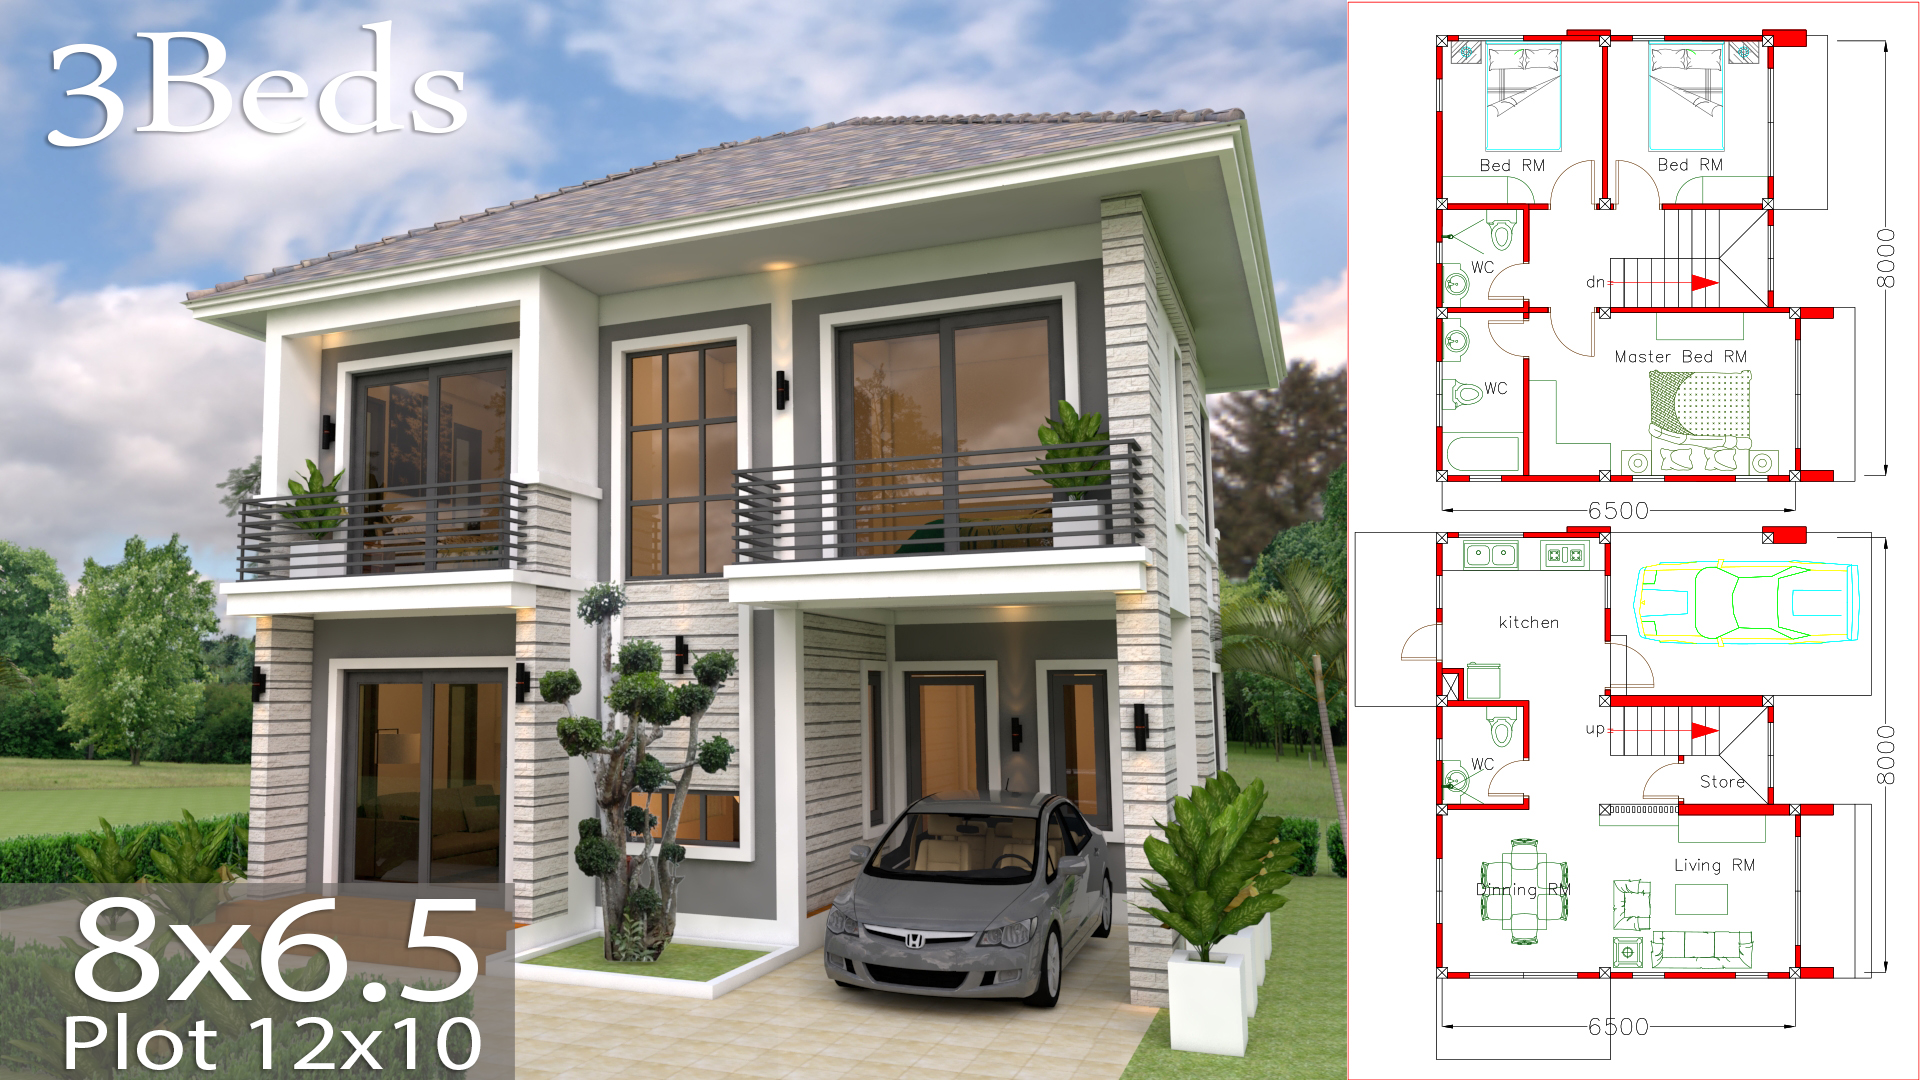 House Plans 8x6.5m With 3 Bedrooms - Sam House Plans